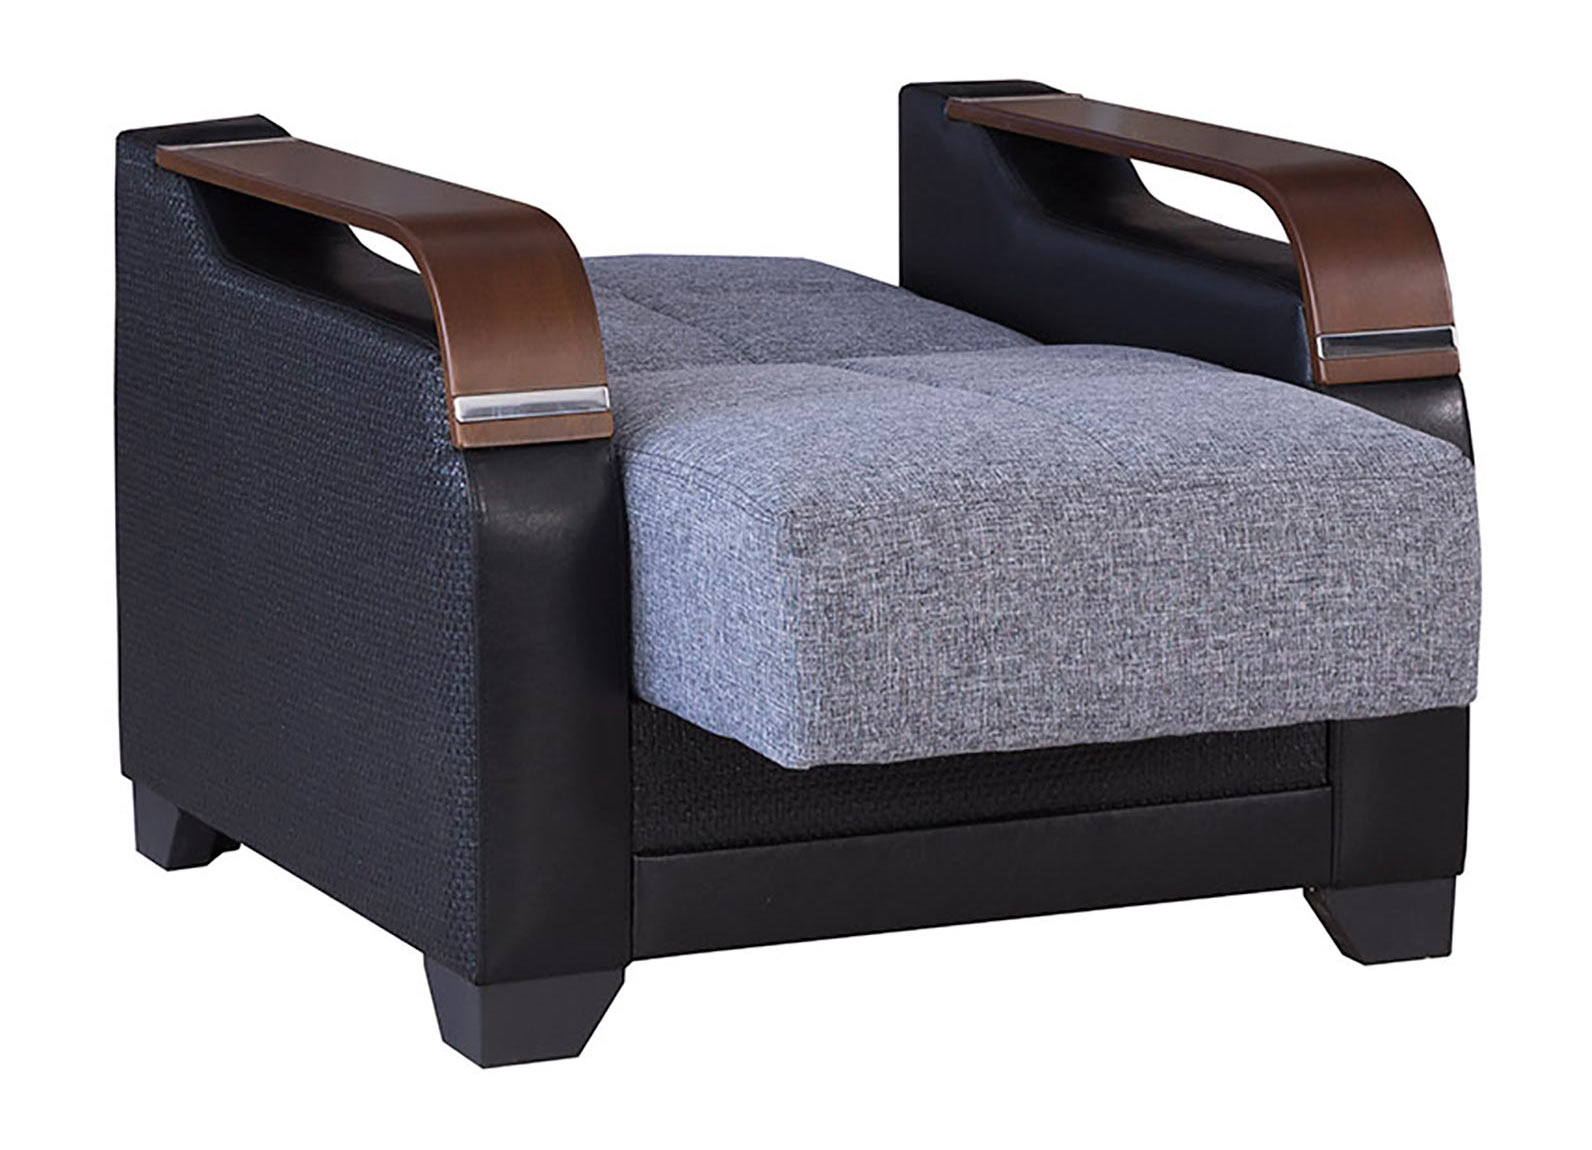 La reina moon gray convertible chair by casamode for Sofa bed 549 artek